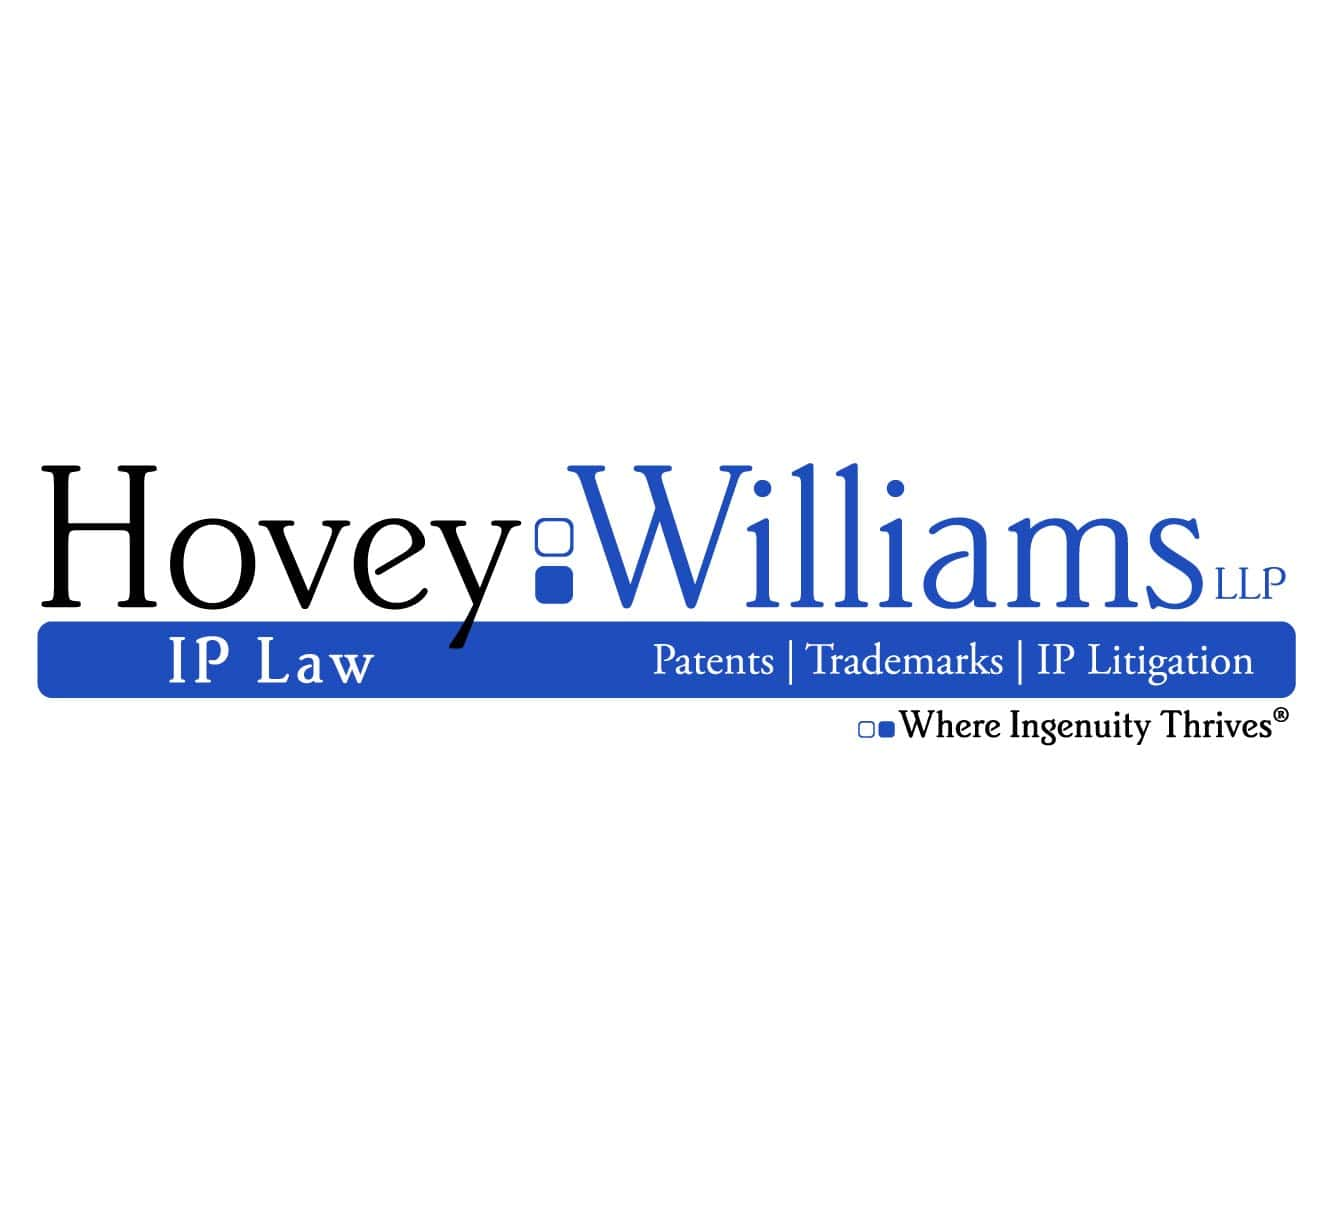 Hovey Williams